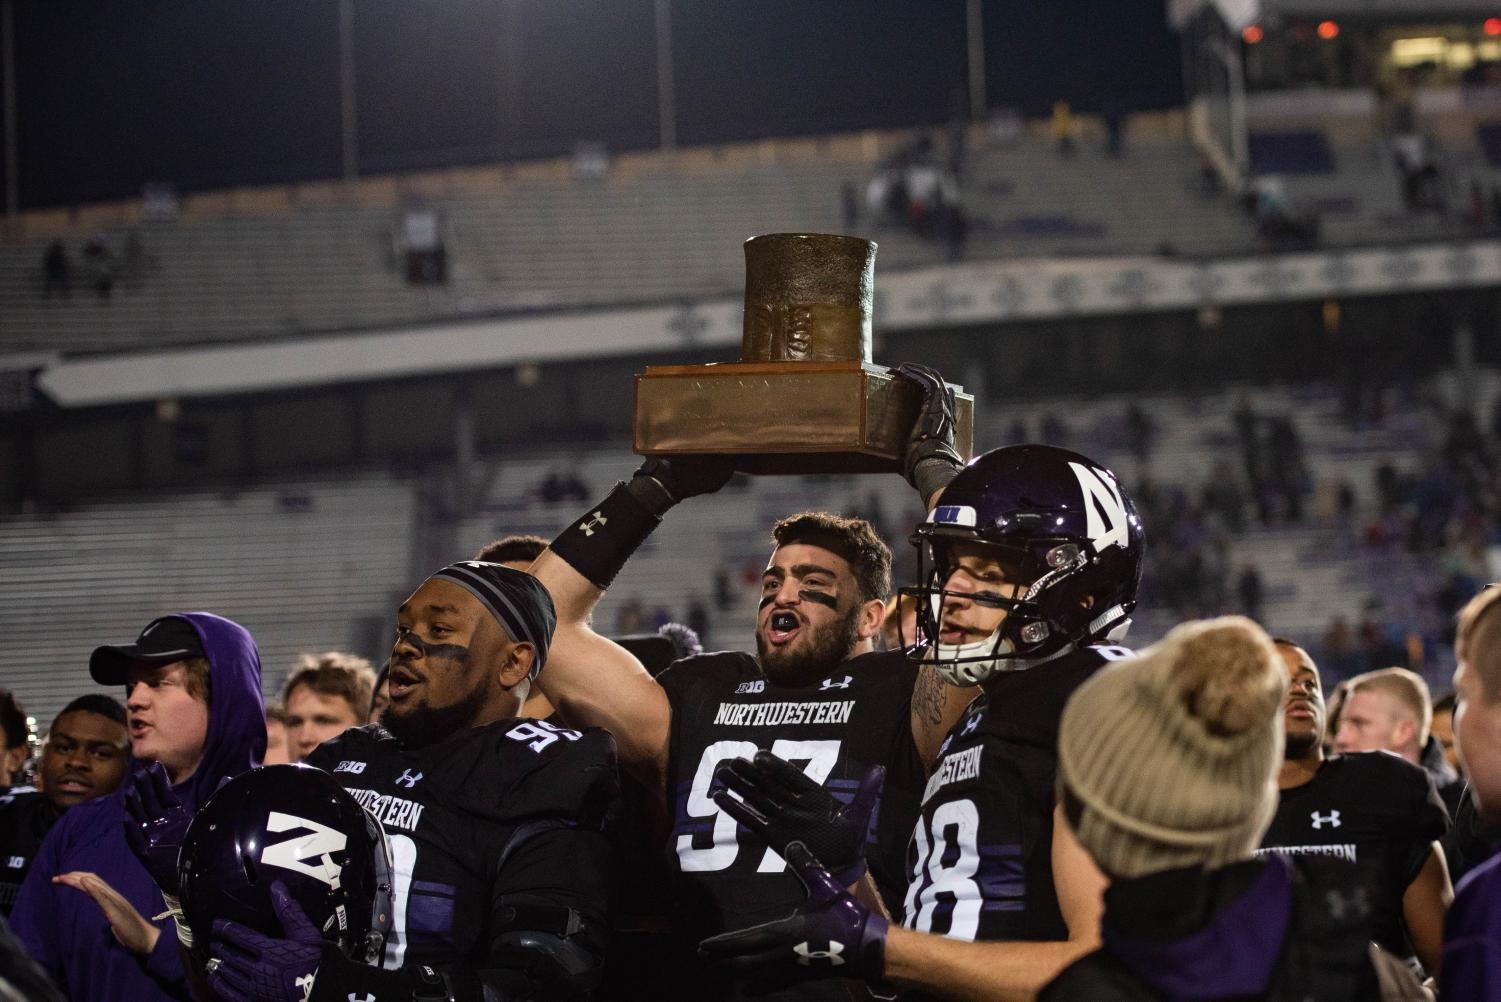 Junior defensive end Joe Gaziano hoists the Land of Lincoln Trophy among his teammates after Northwestern's 24-16 win over rival Illinois at Ryan Field on Saturday.